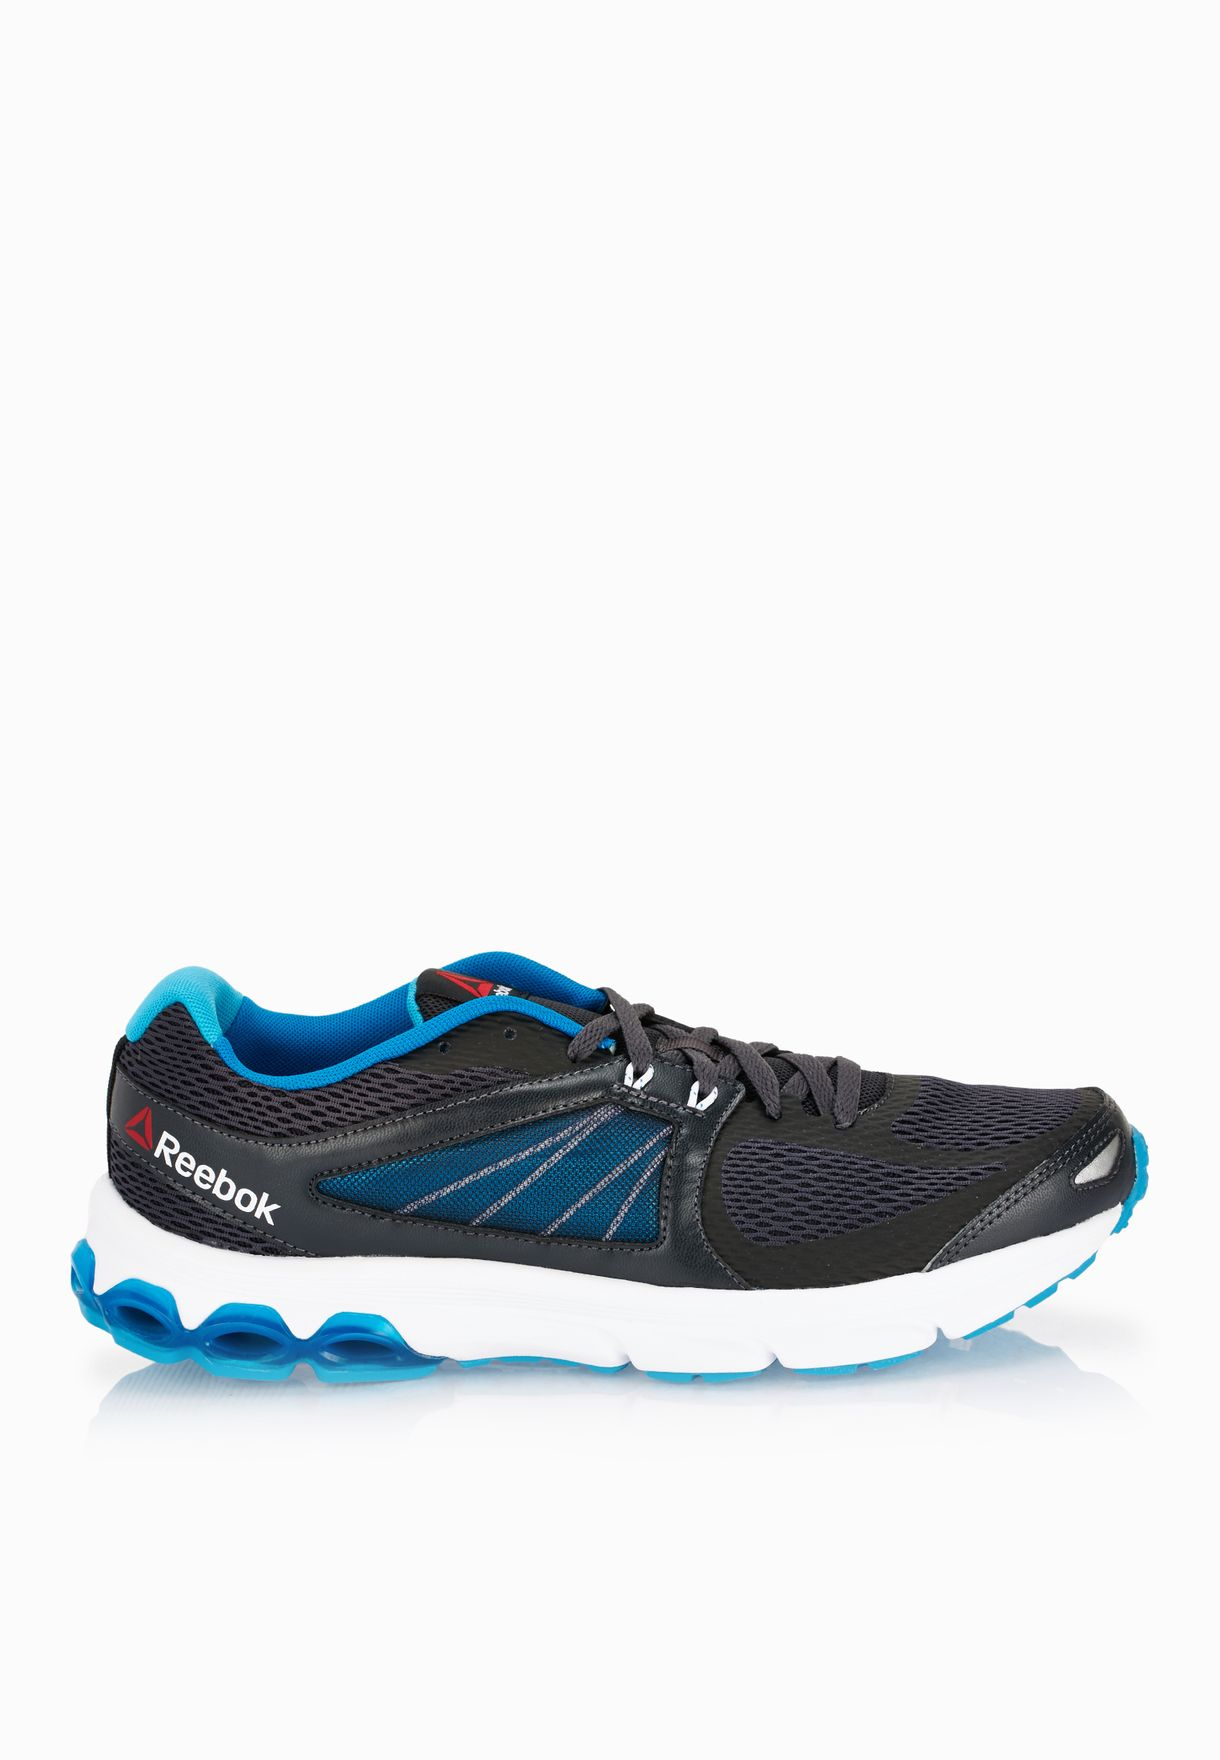 8b5b2d754bc Premium Shoes Sports View all · Today s deal New arrivals · 0. Dmx Fly